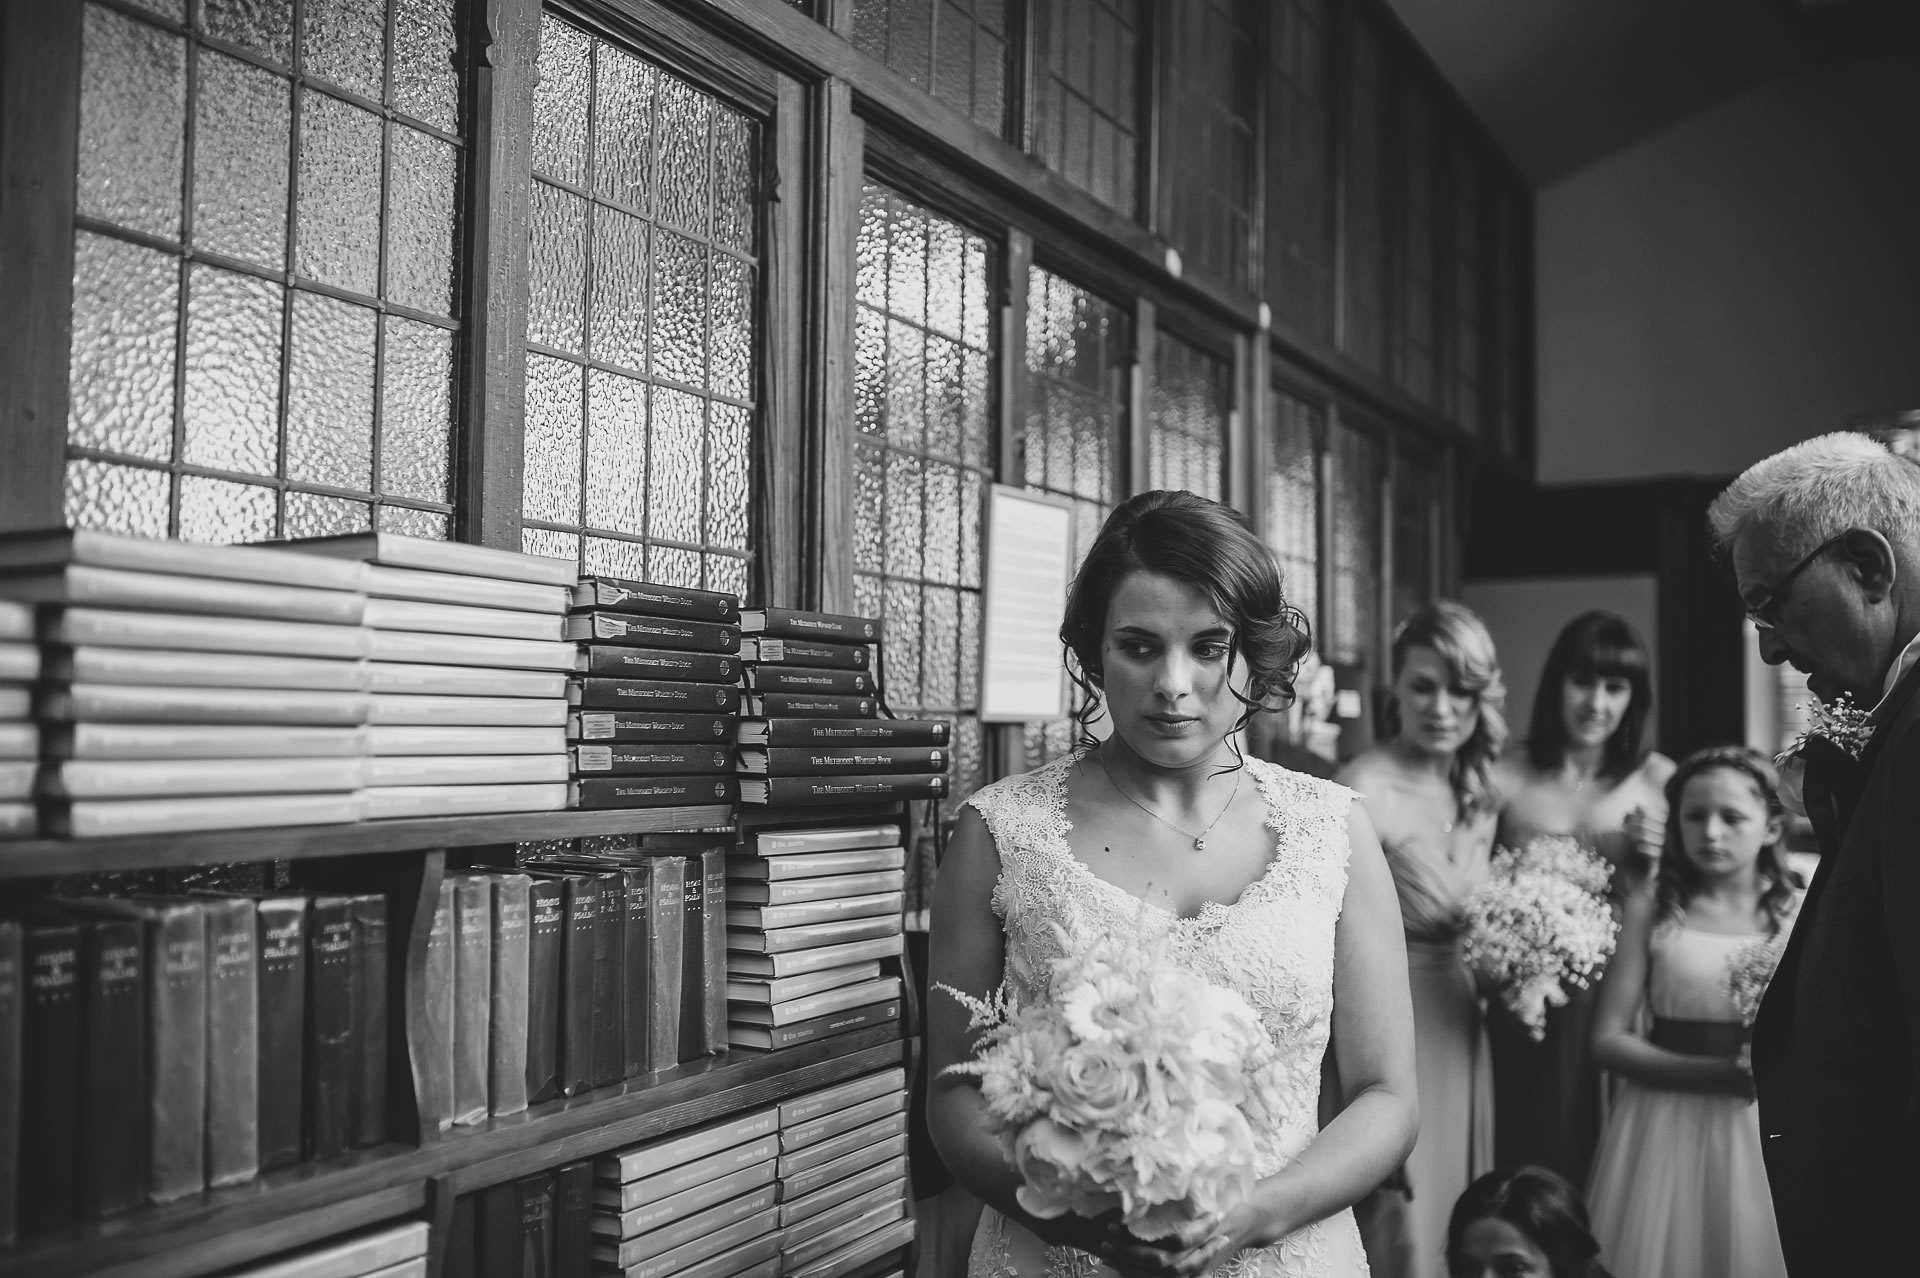 Foxley Photography, Manchester, Lancashire and Nationwide Wedding Photography Portfolio